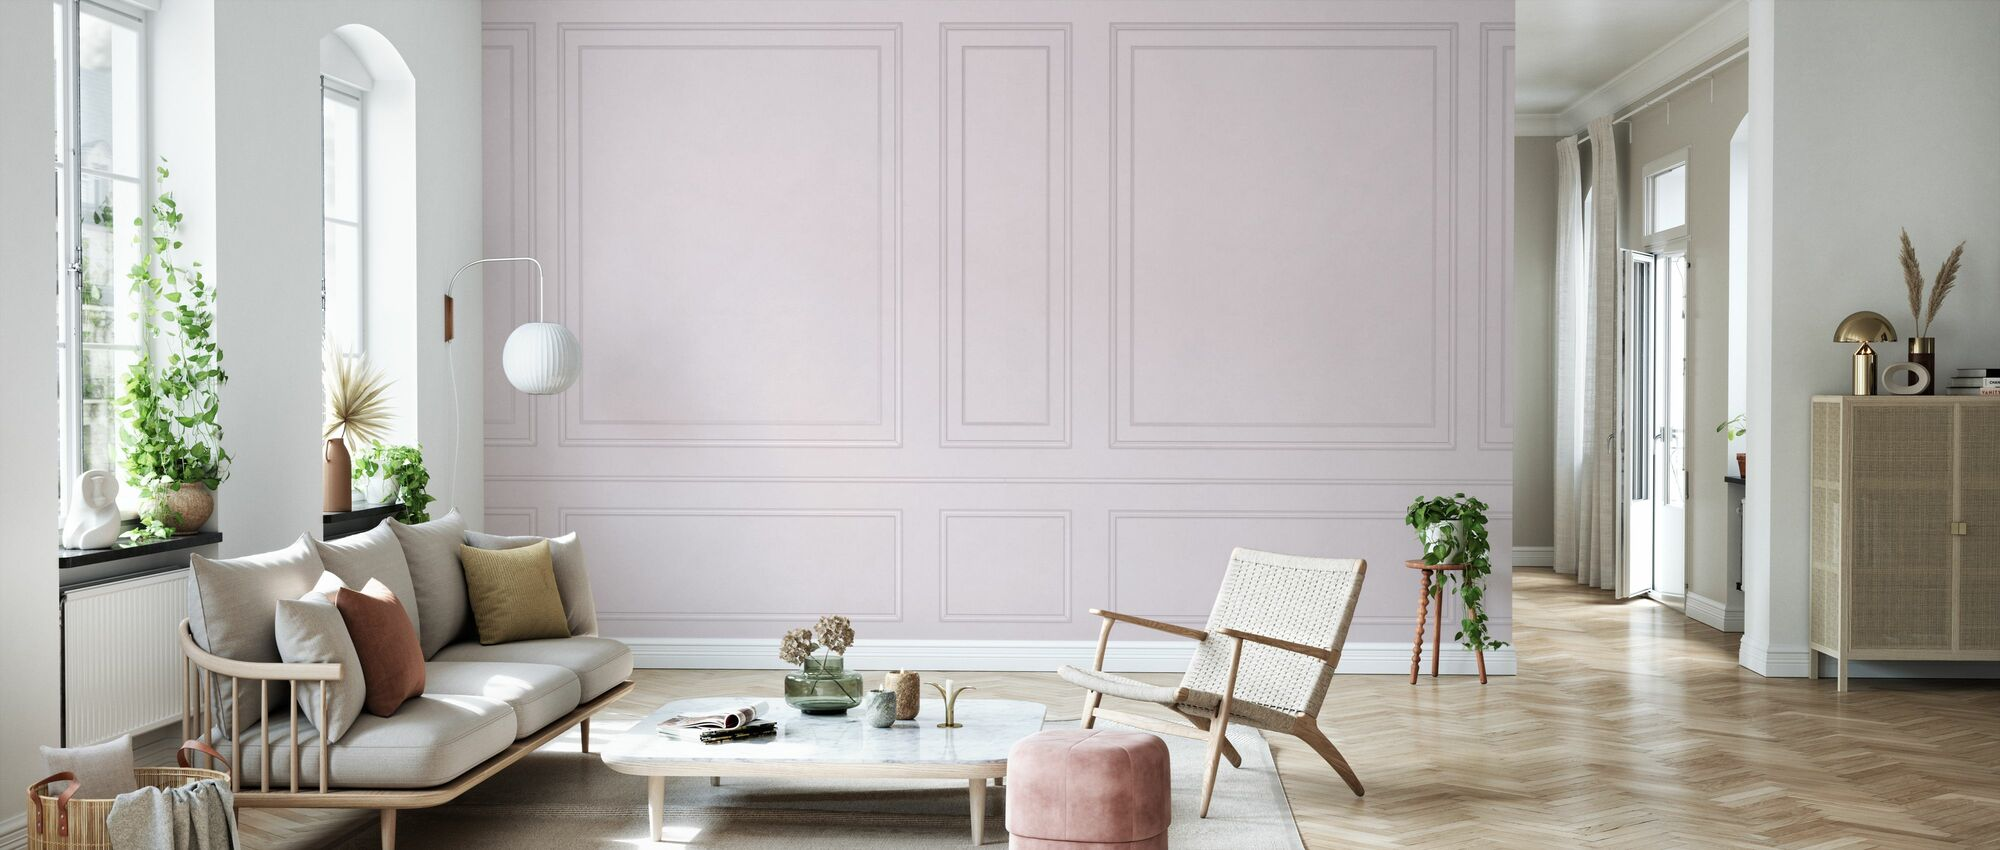 Voguish Wall Panel - Pink - Wallpaper - Living Room